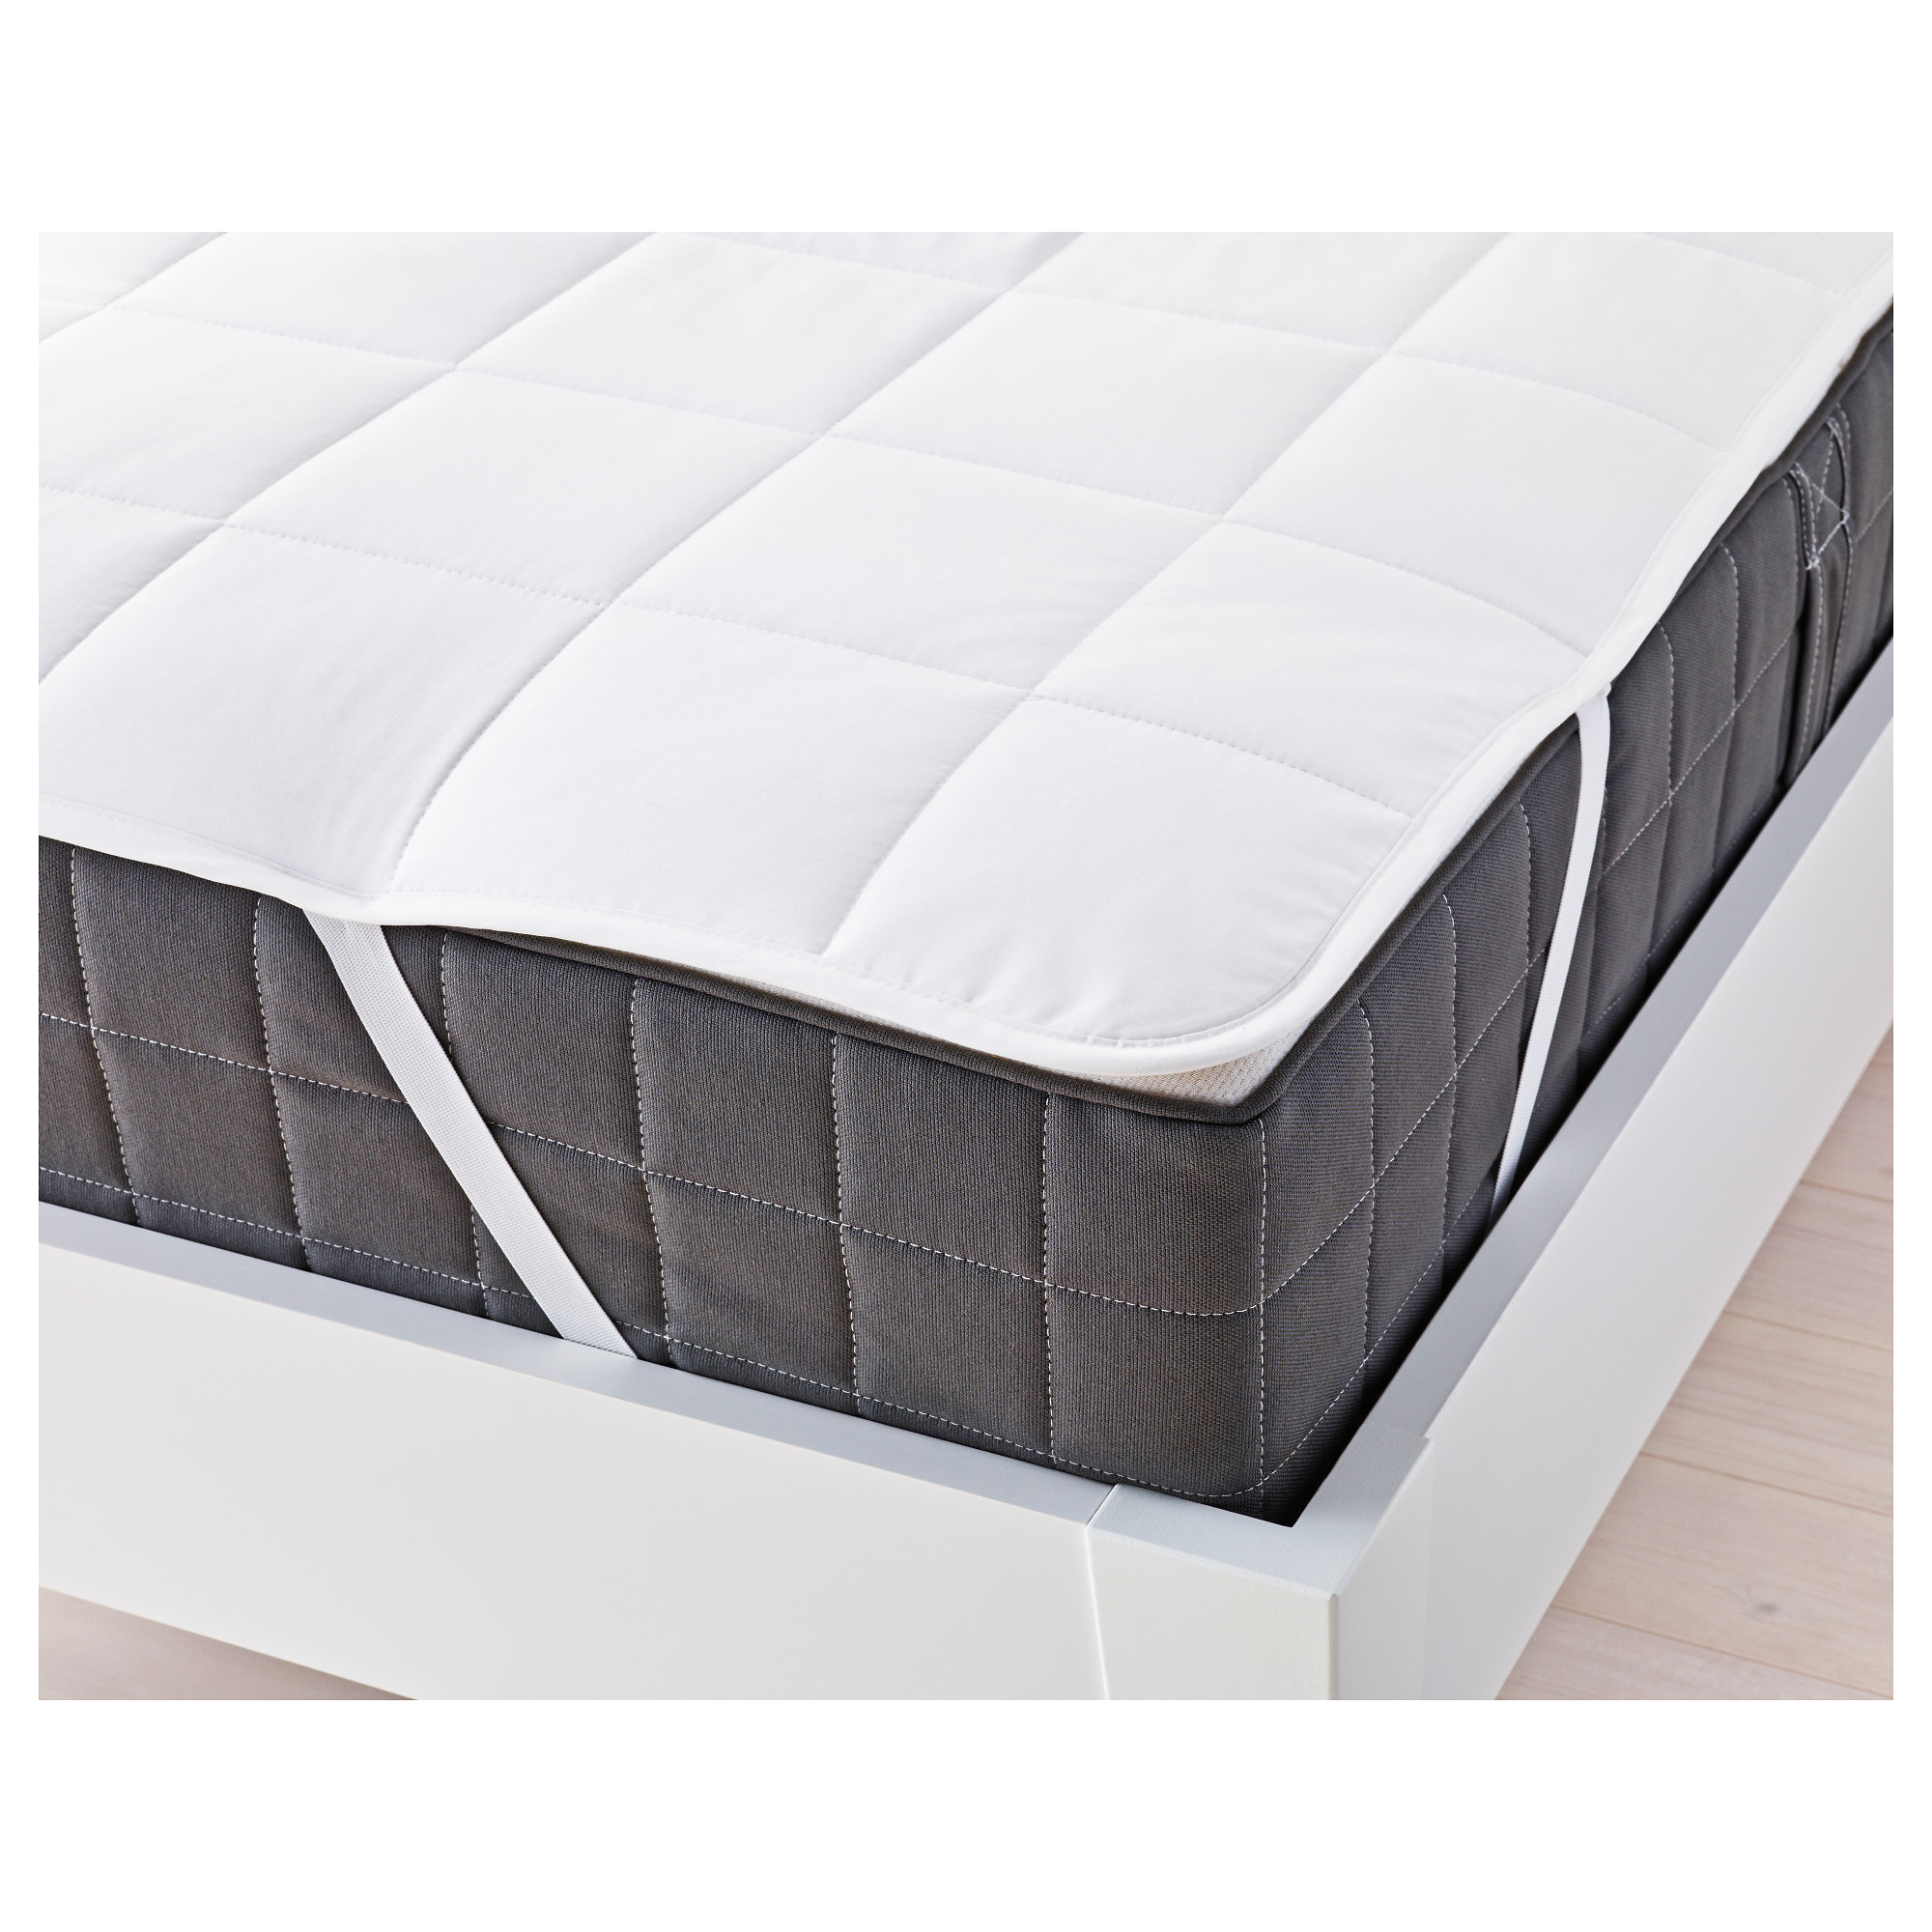 Standard Sheet Bed Bundles